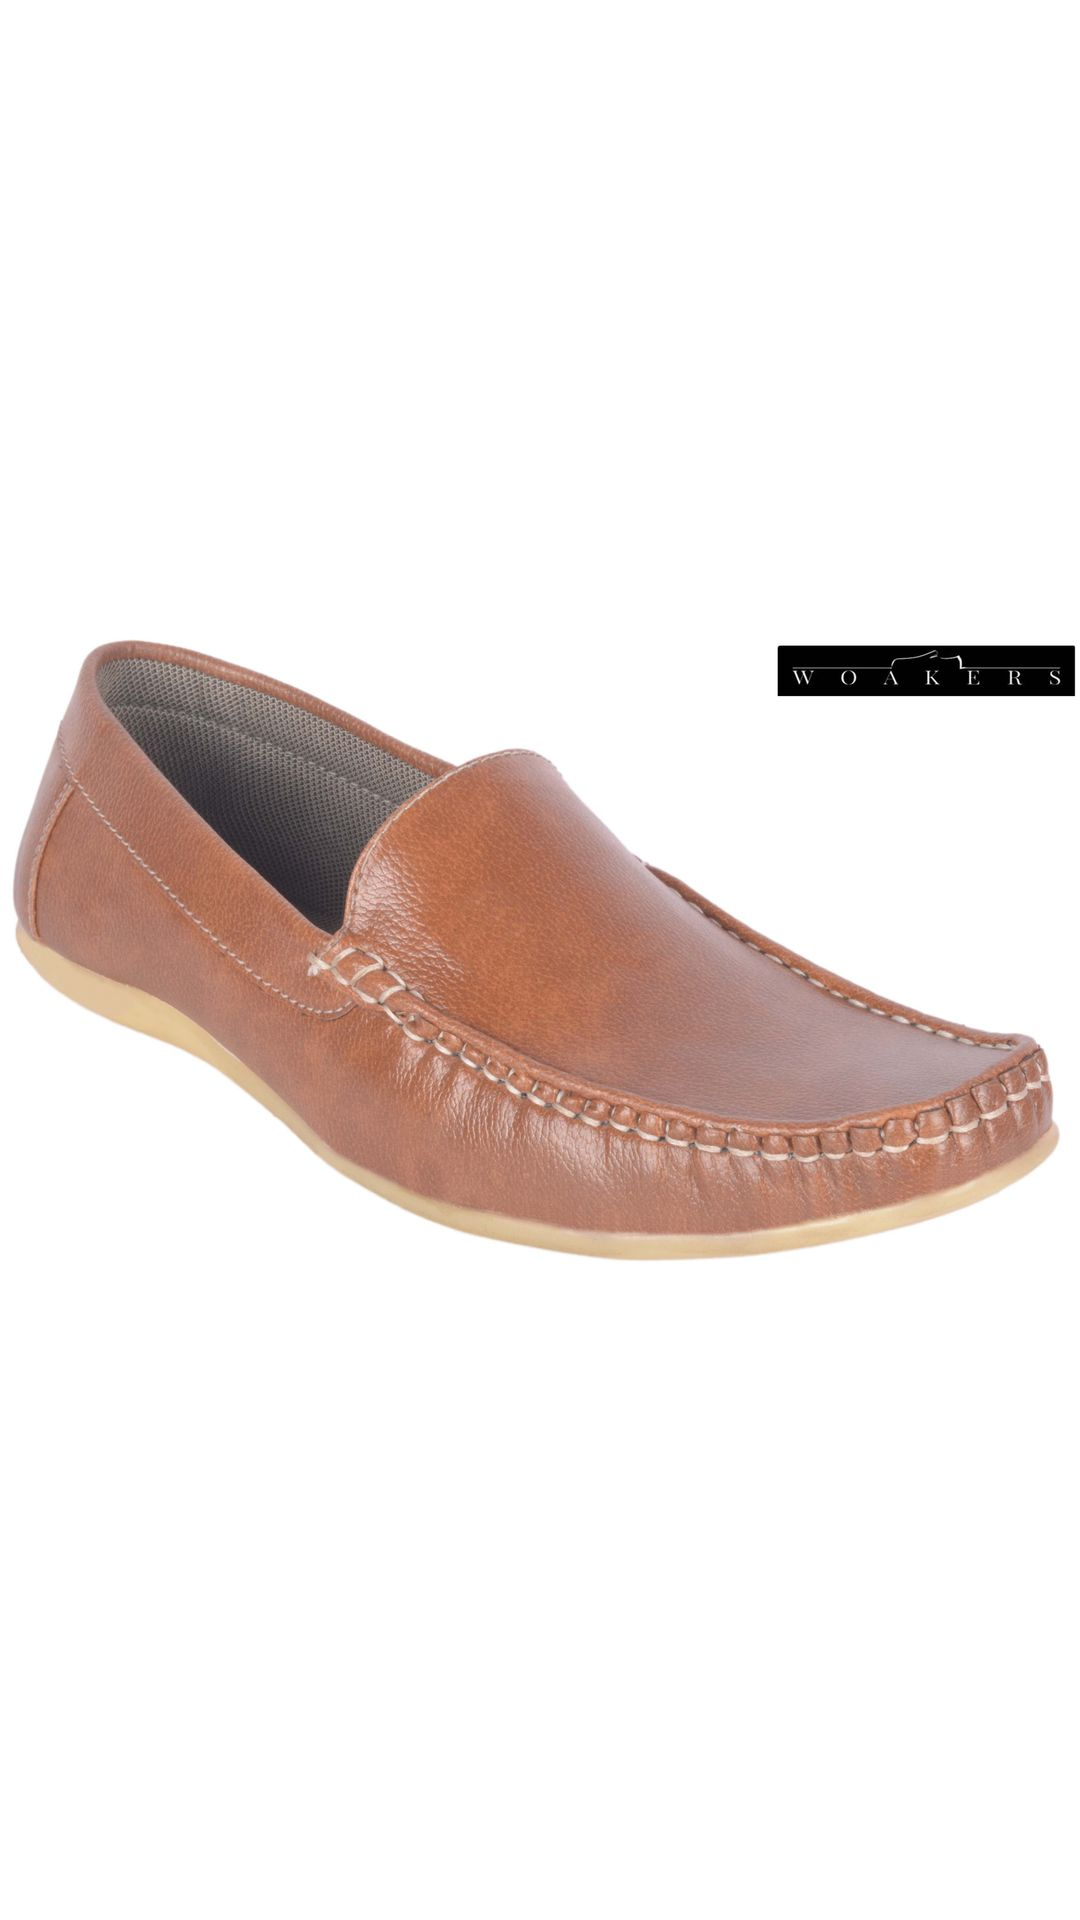 woakers styalish men's brown lofer